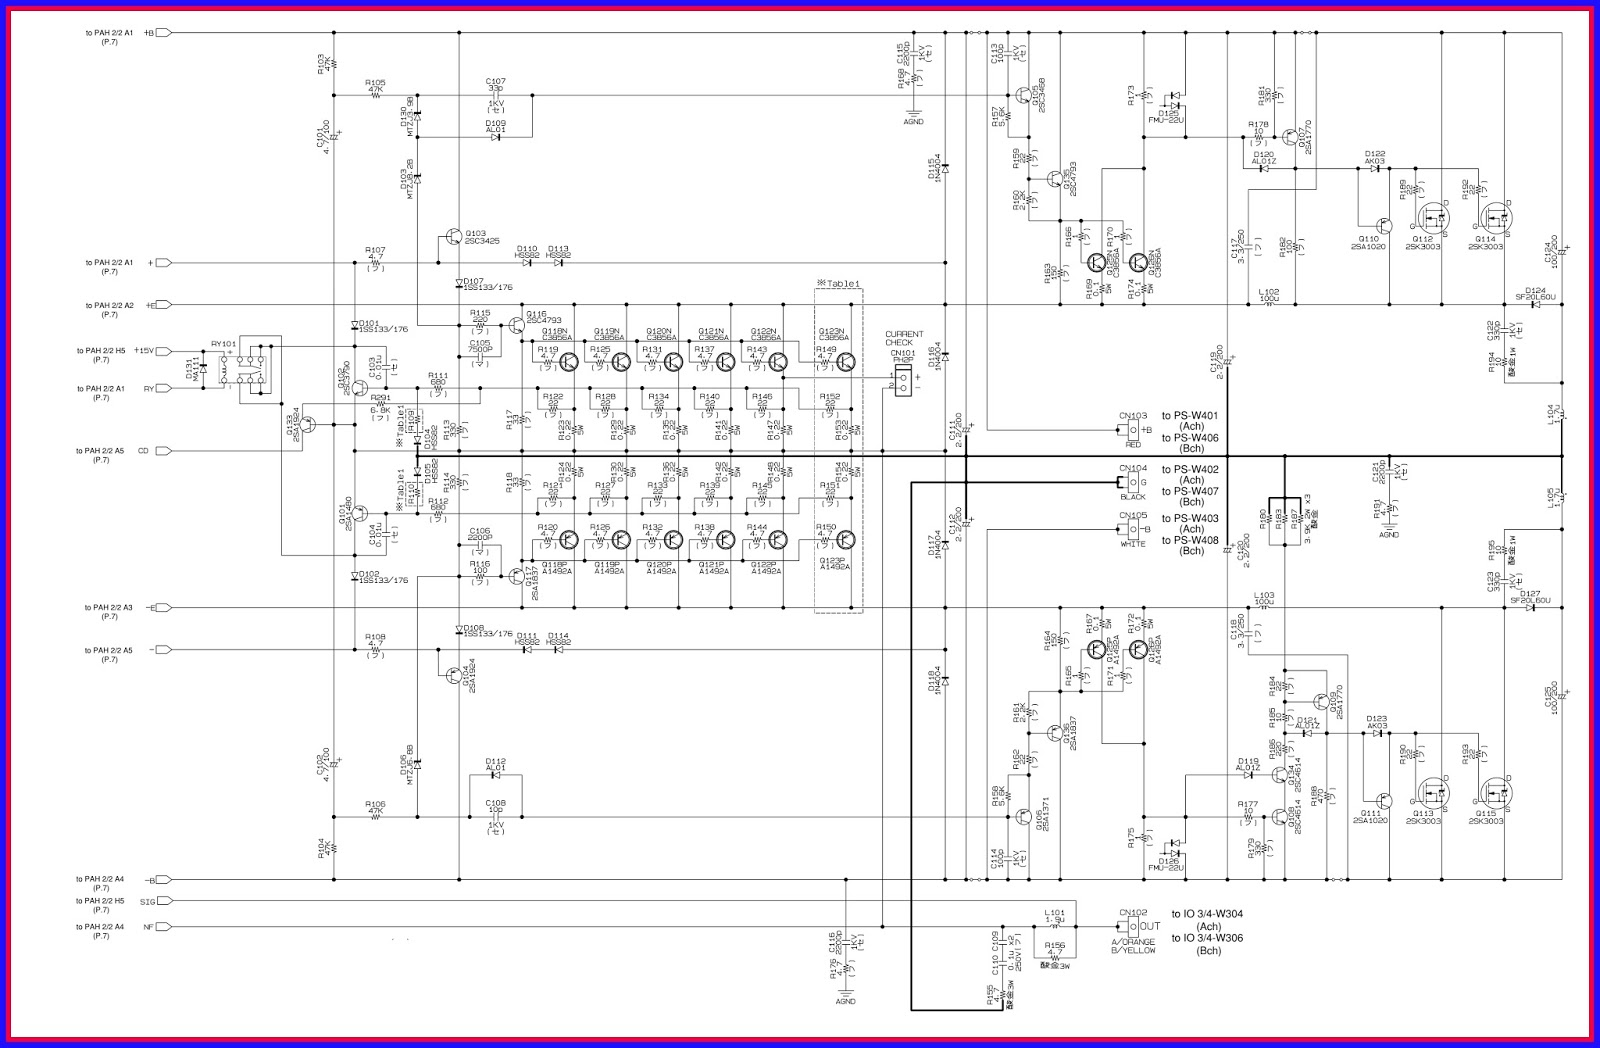 Db Audio Amplifier Diagram Electrical Wiring Car Circuit Received By Email Lm2896 Electronic Equipment Repair Centre Yamaha Xp7000 Mono Drive Amps